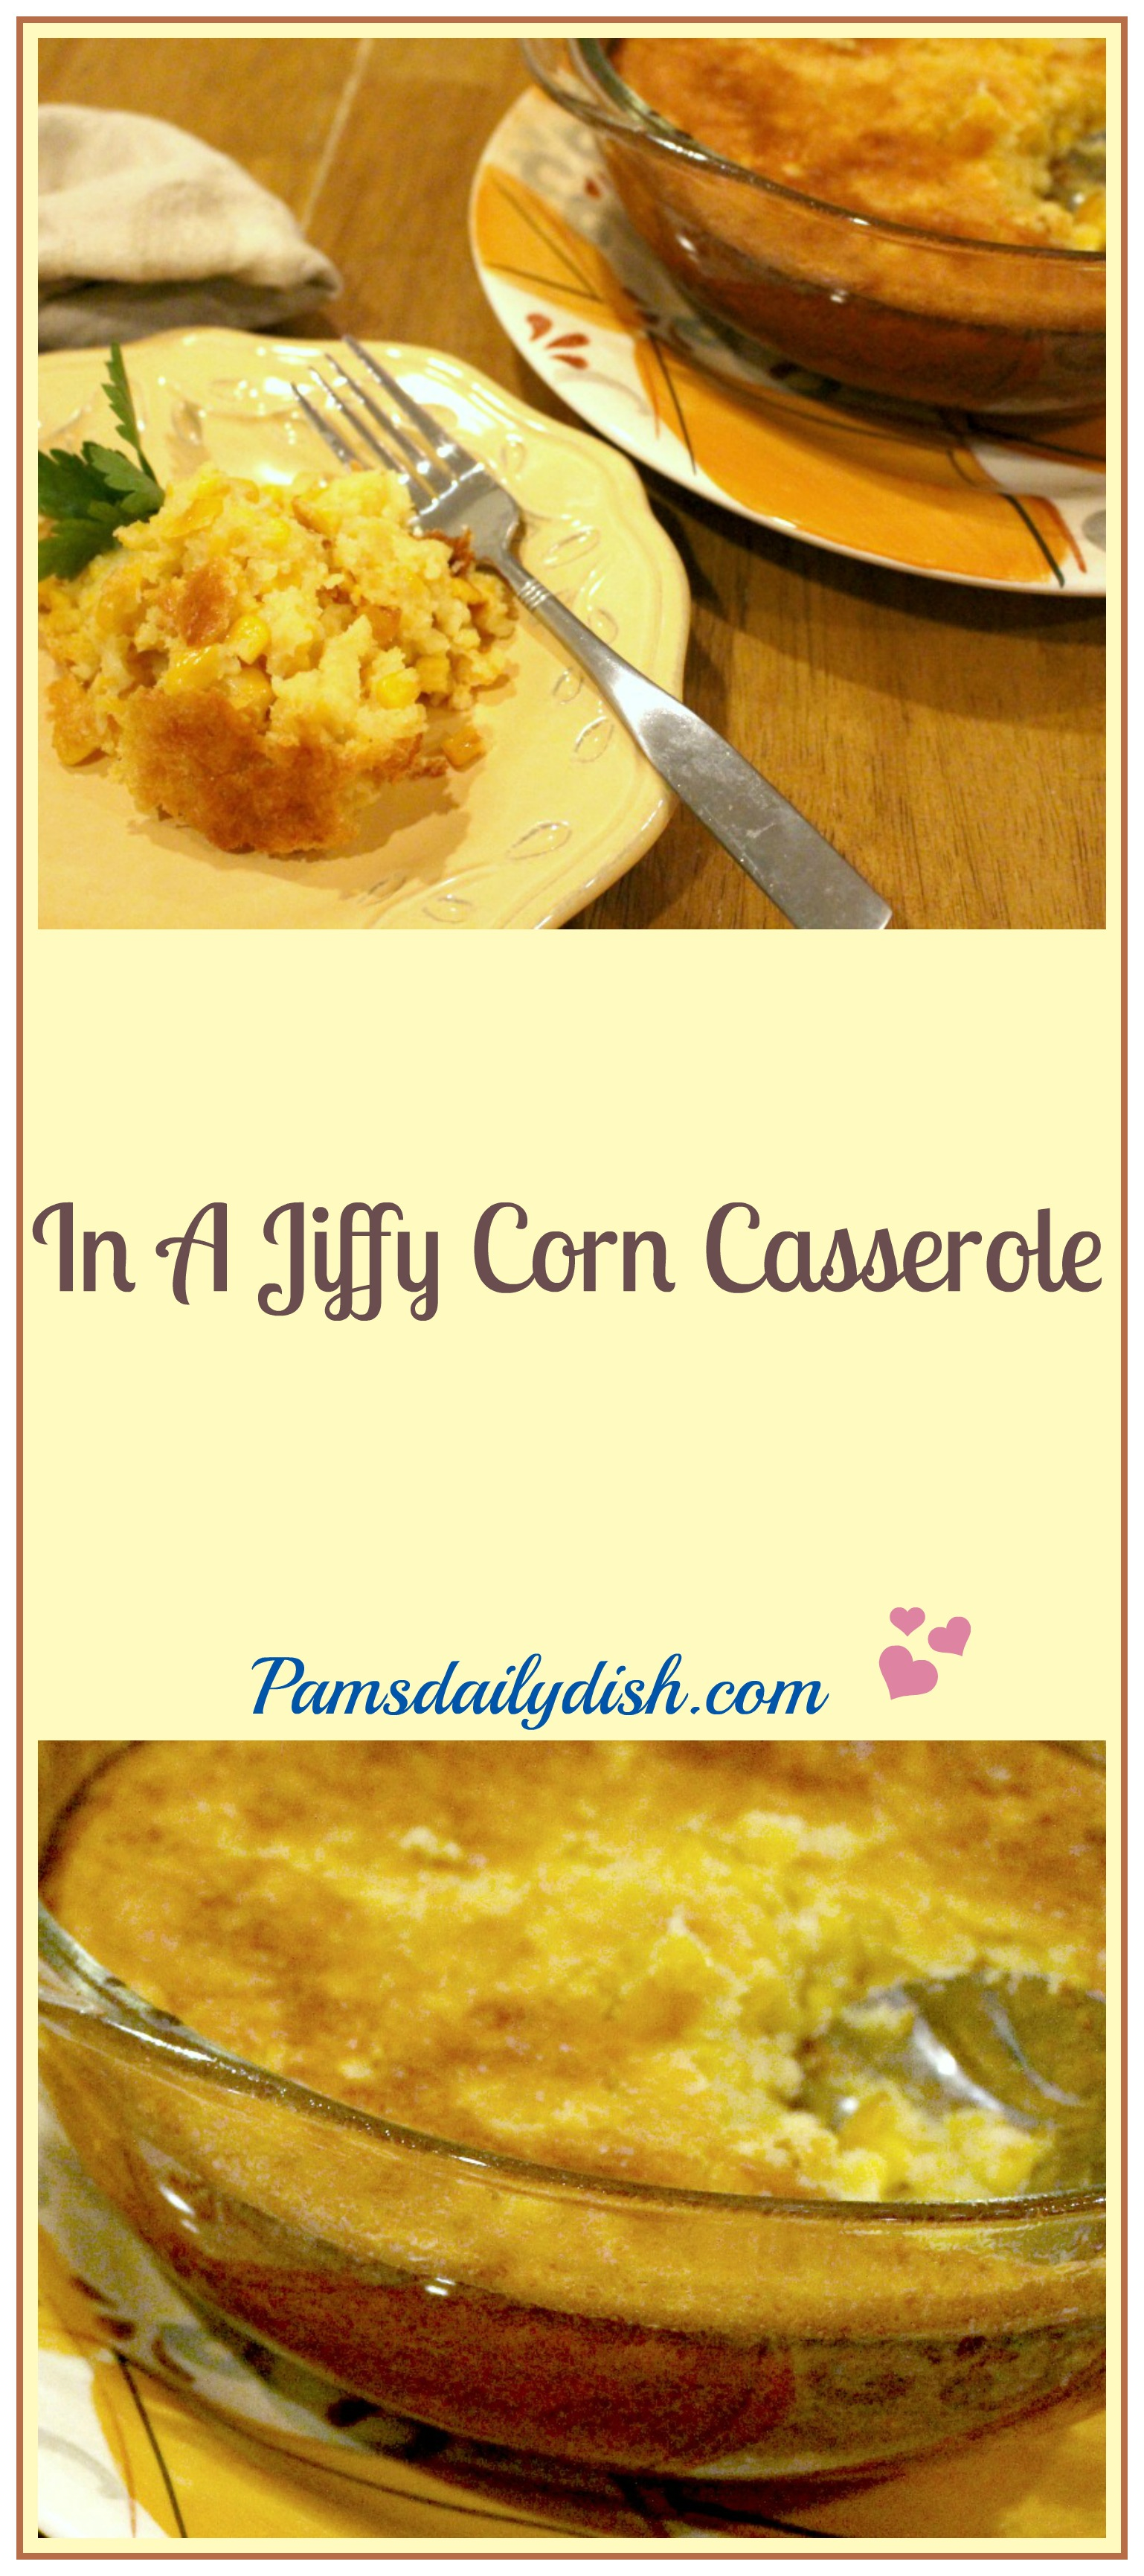 Jiffy Cornbread Mix Corn Casserole Recipe - On Sutton Place |Jiffy Cornbread Casserole